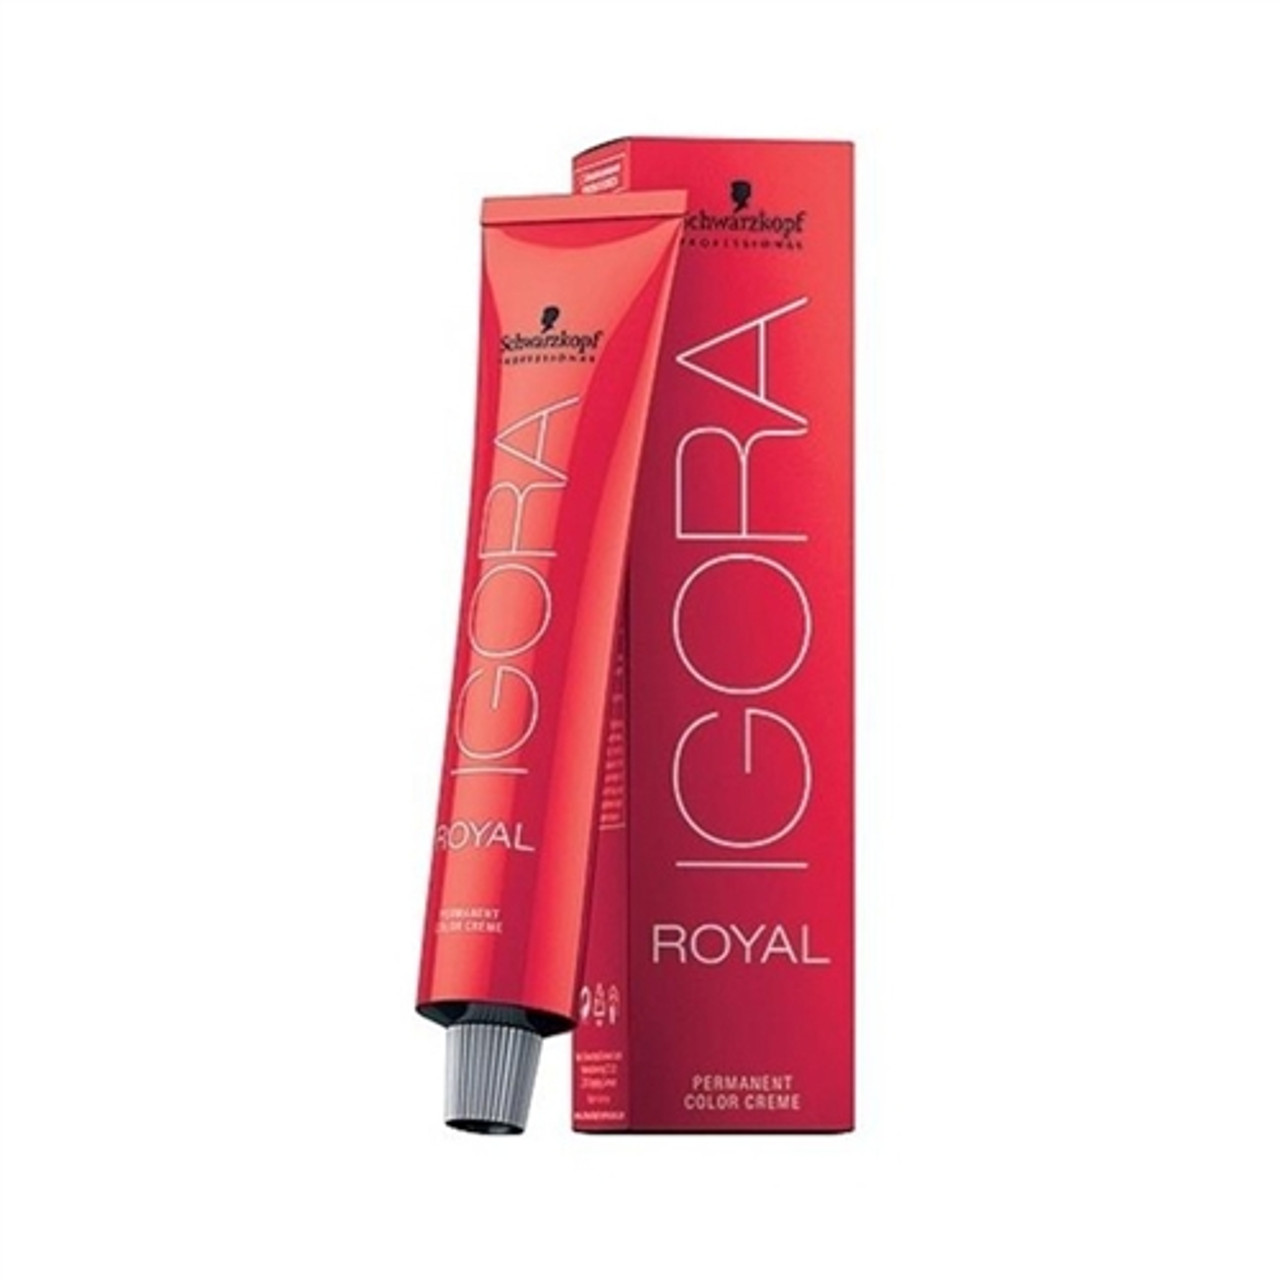 Schwarzkopf Igora Royal Permanent Color Creme - Light blondee 8-00